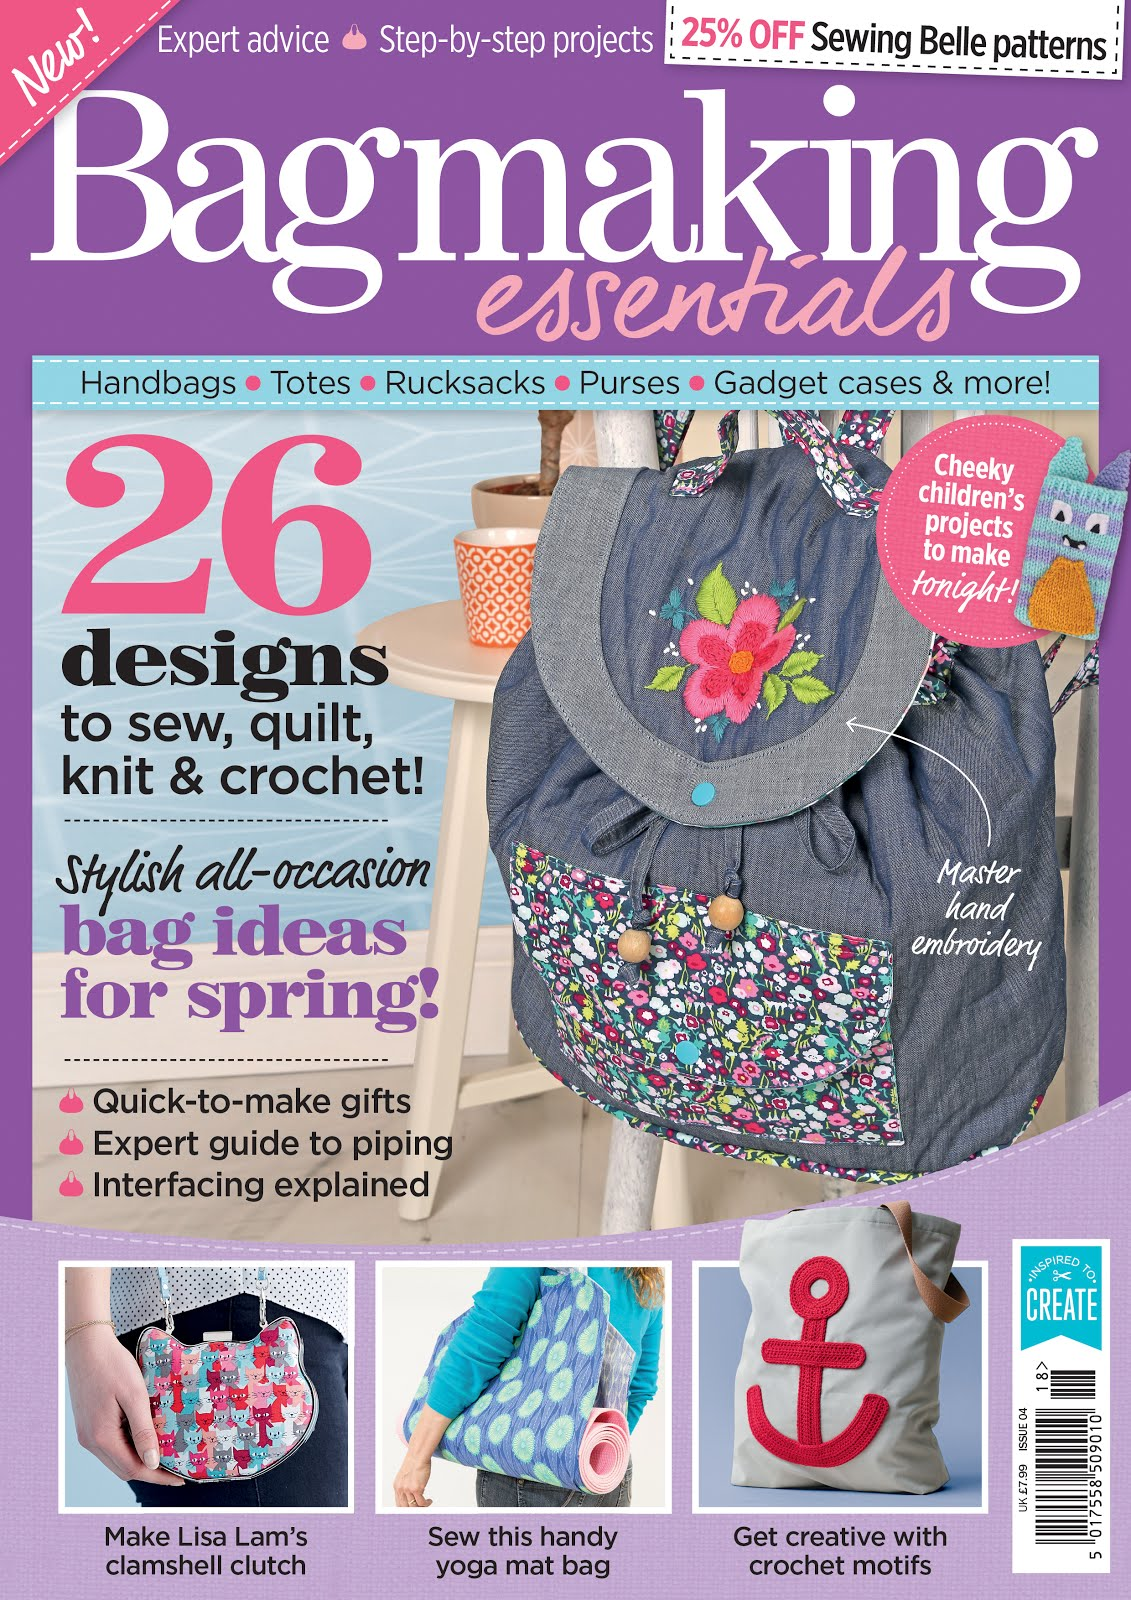 You can find me in